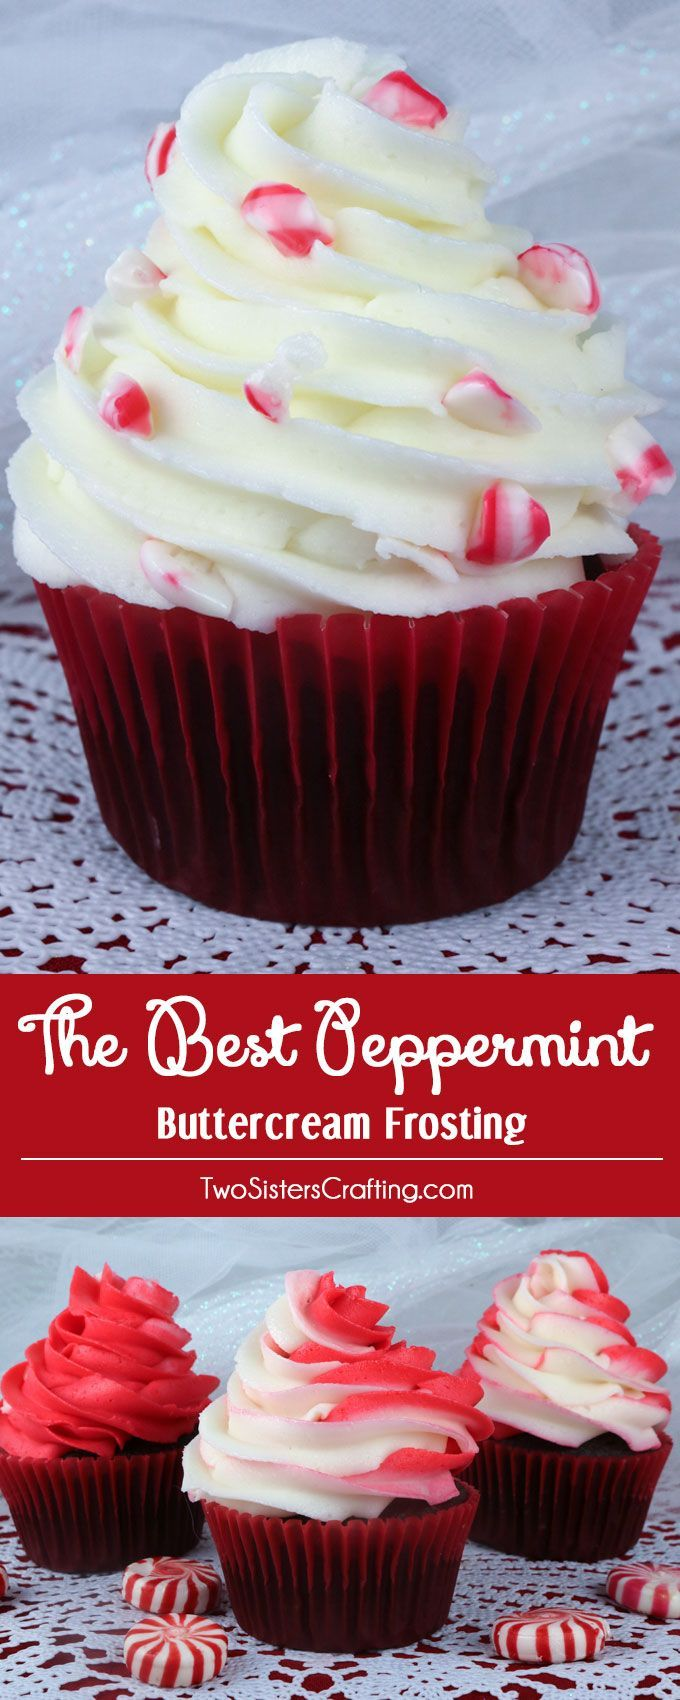 The Best Peppermint Buttercream Frosting. We think it tastes just like a butter mint candy - sweet, creamy, buttery with just the right amount of peppermint flavoring. It will make anything you put it on taste better - especially a Christmas dessert or treat! Pin this yummy homemade frosting for later and follow us for more great Frosting recipes.